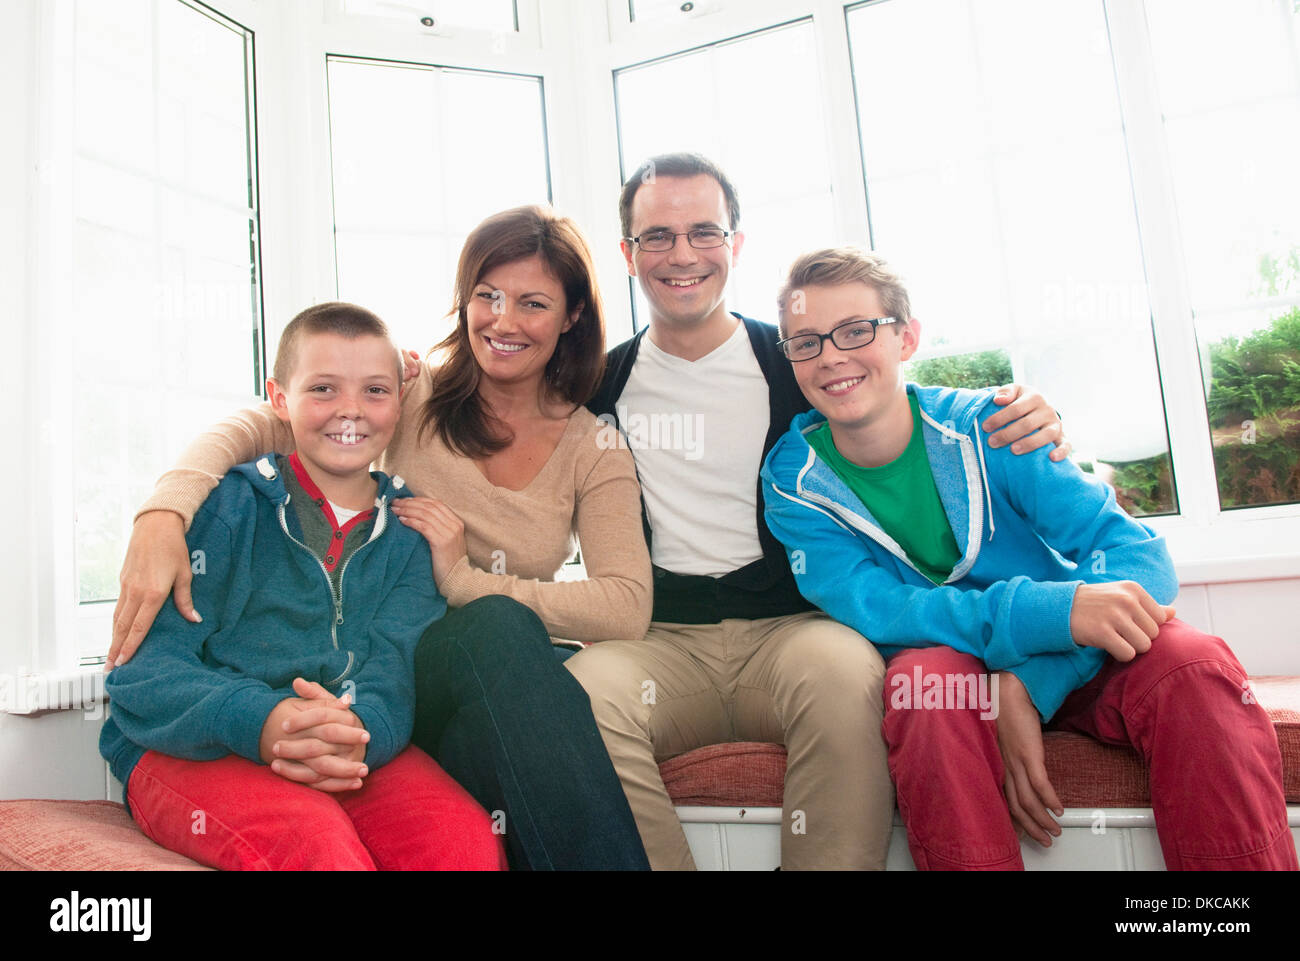 Family portrait in front of window - Stock Image